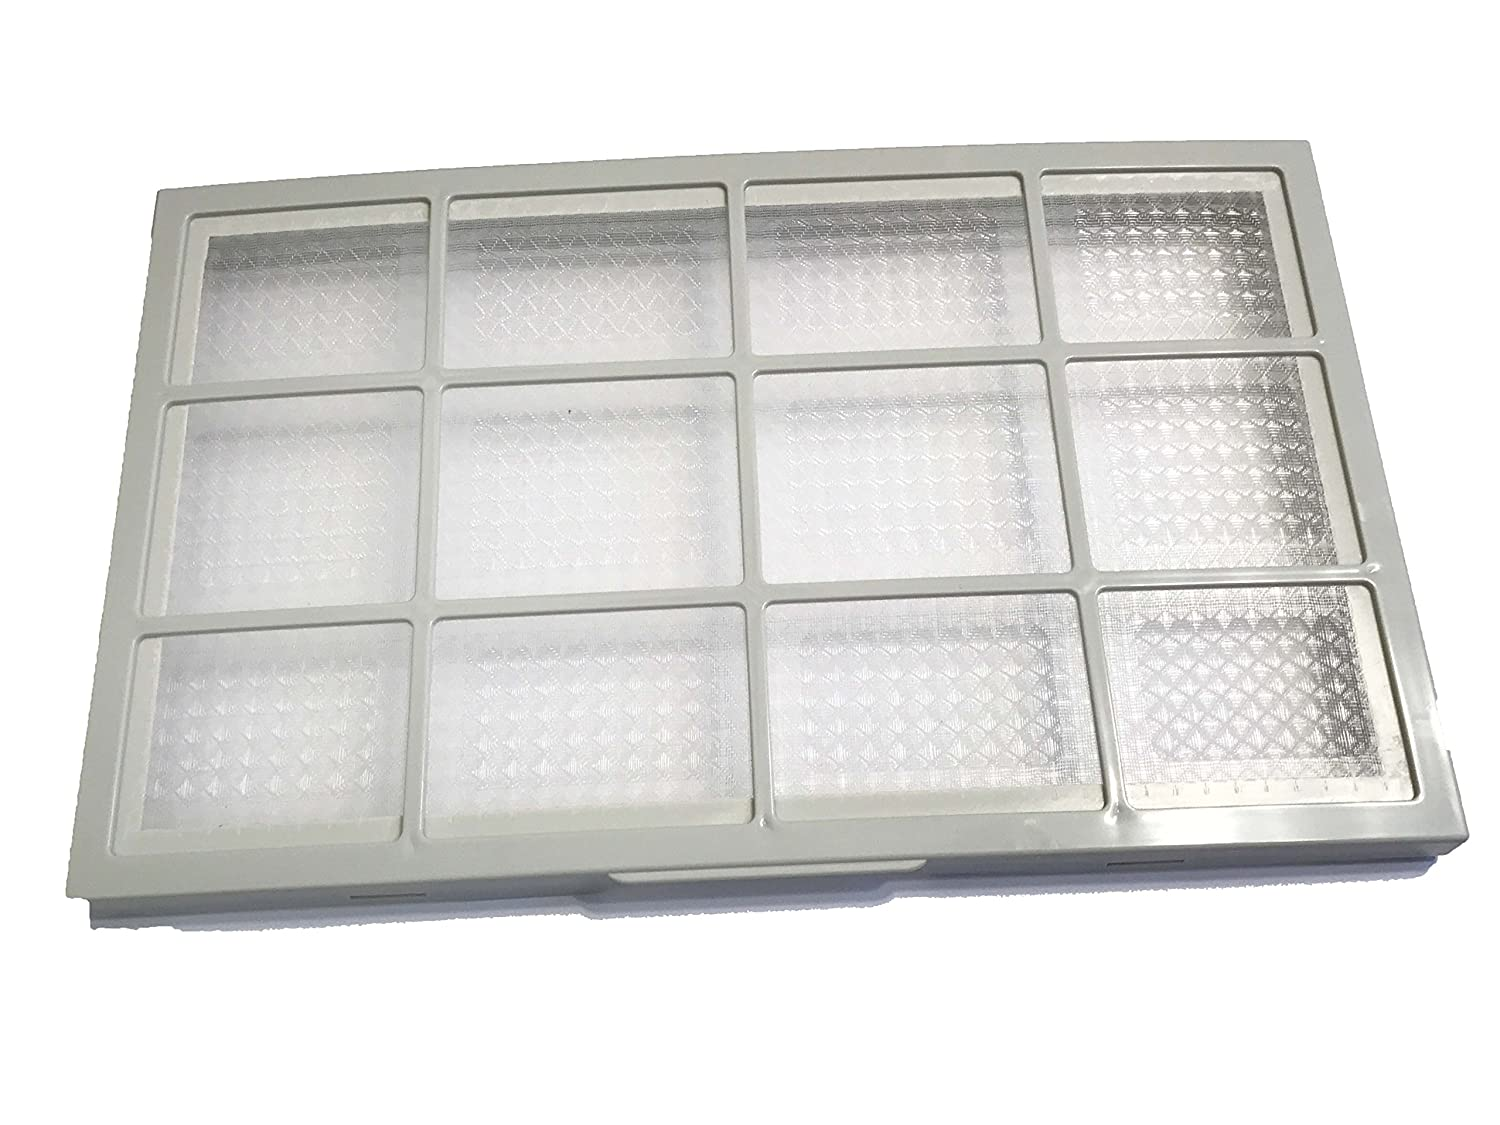 DPAC12KDD OEM Danby Air Conditioner AC Filter Specifically For DPAC12011 DPAC13012H